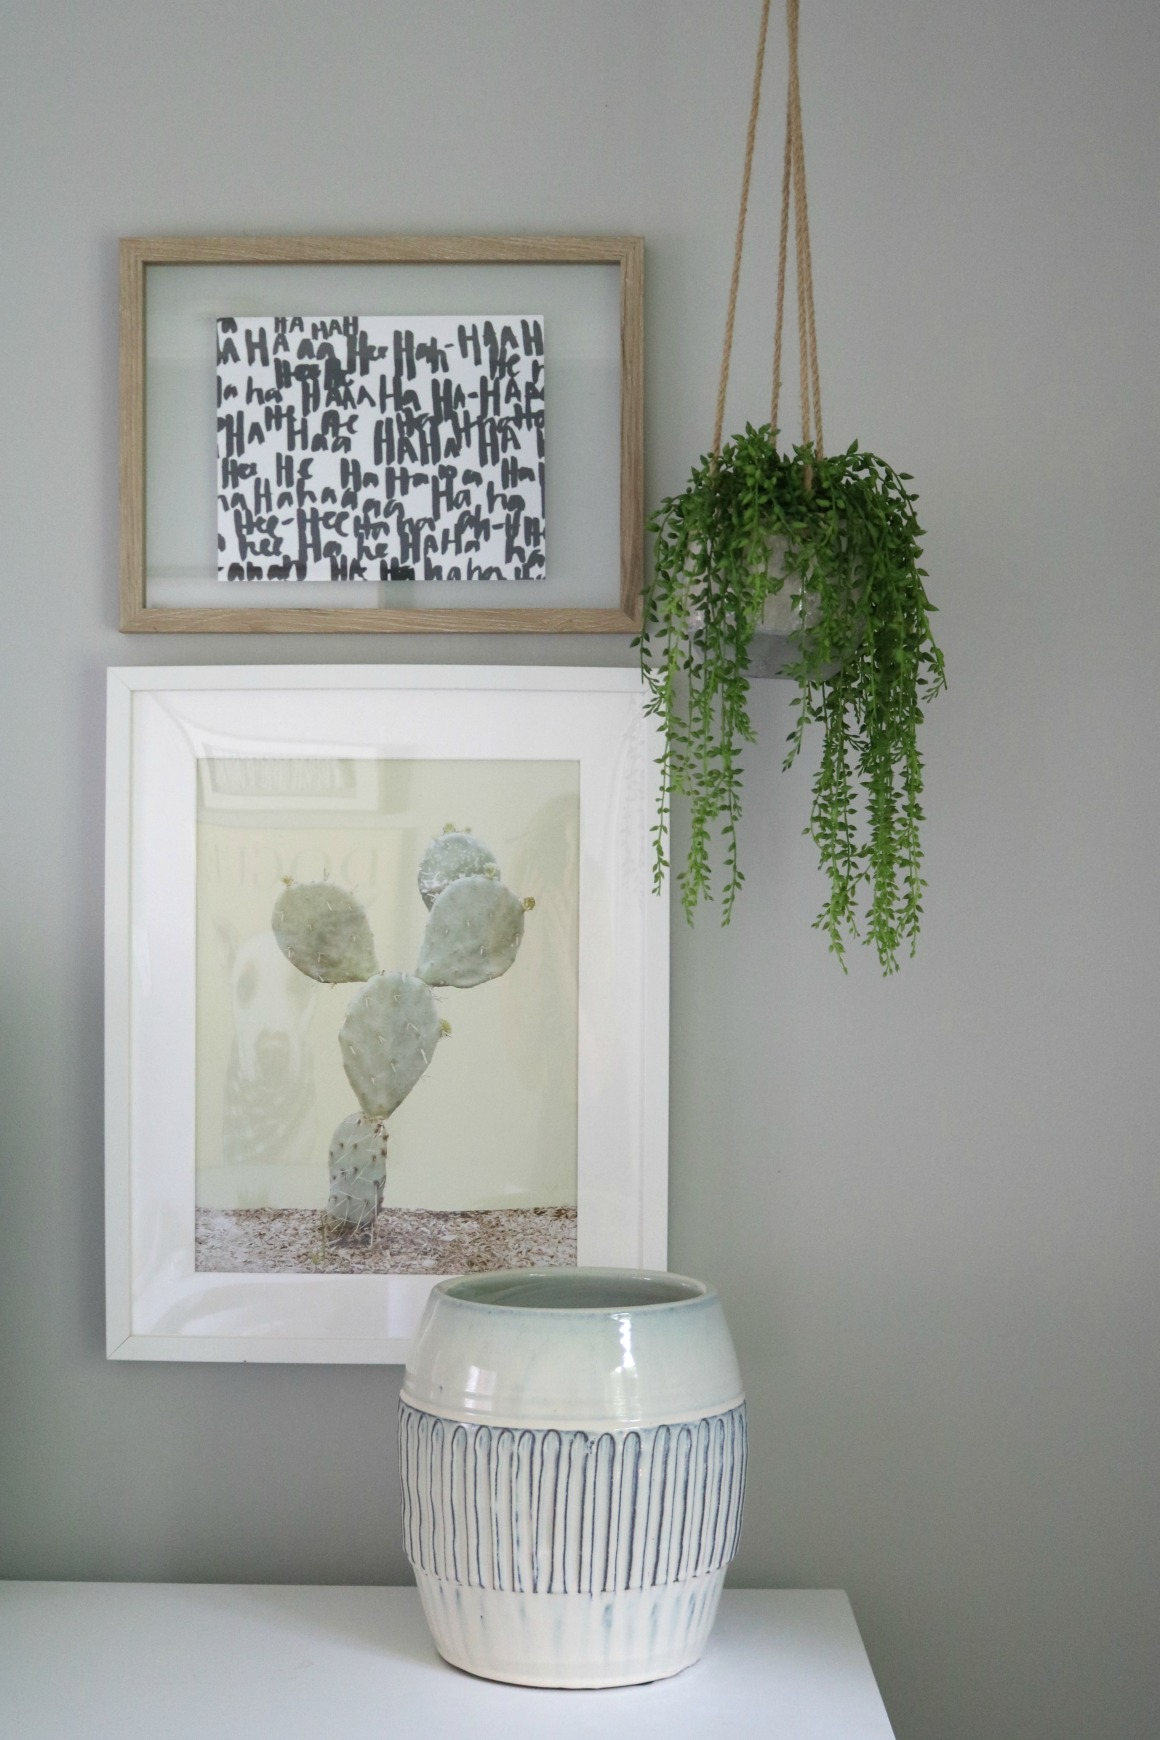 5 of the BEST Tips to Decorate with Thrifted Decor!